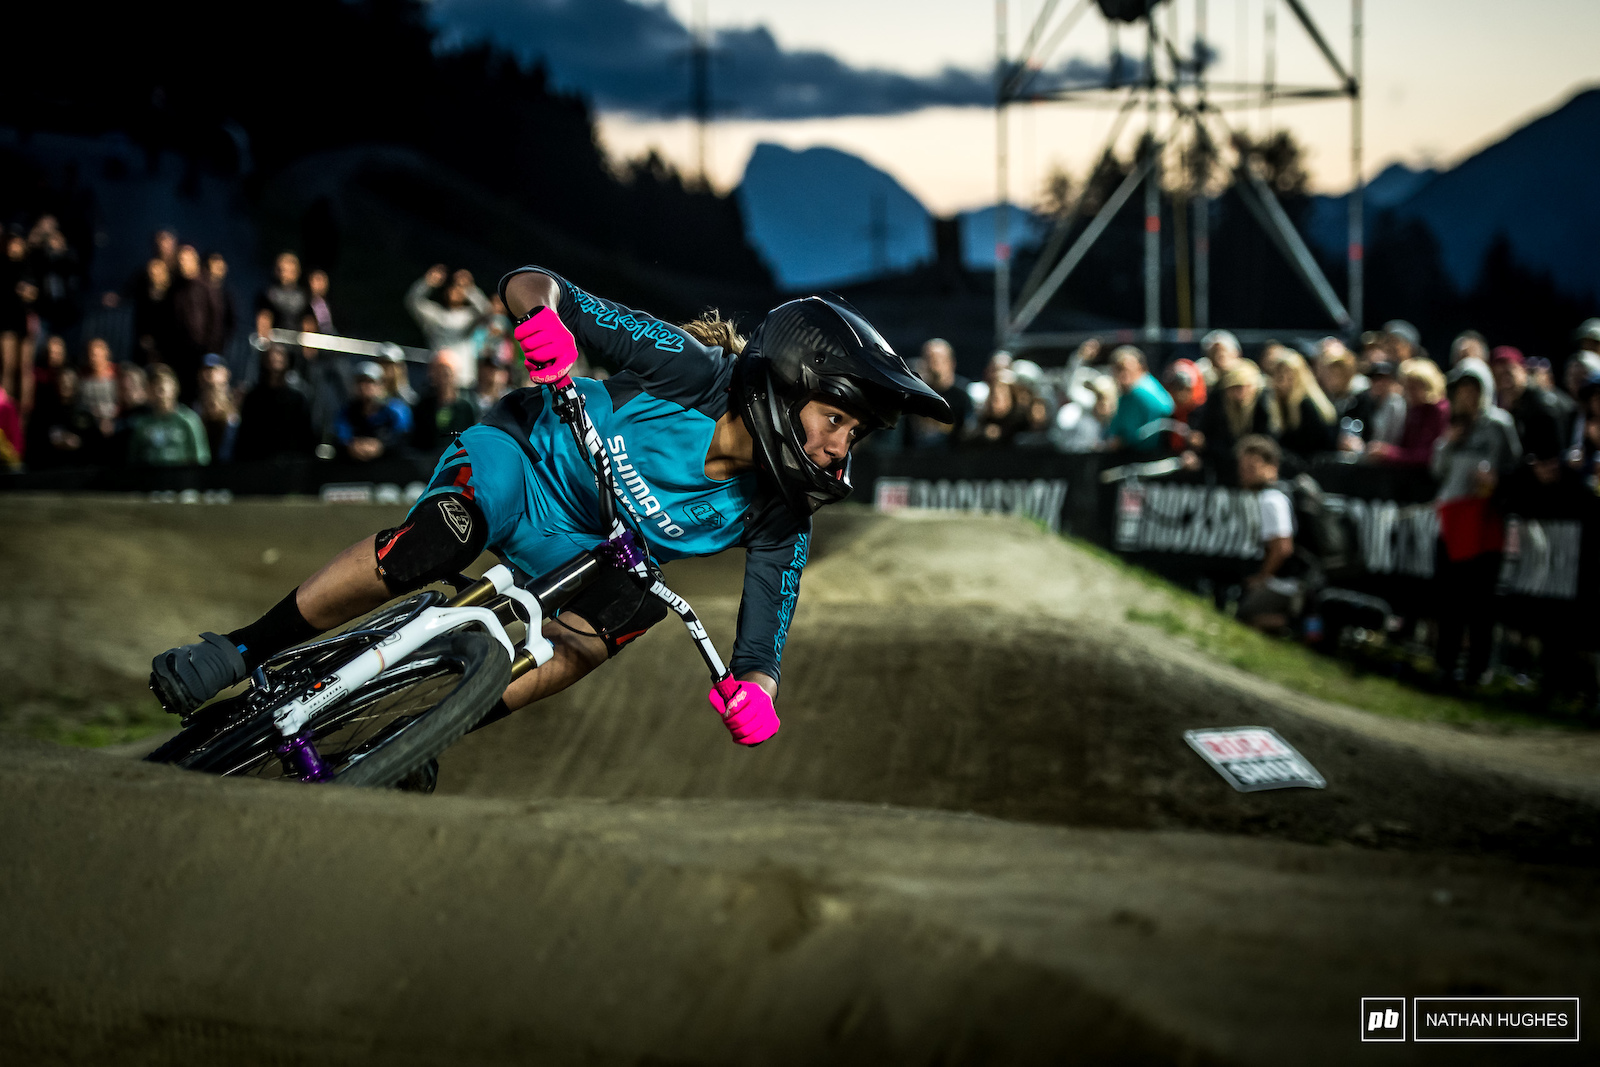 After a podium from US rider Kialani Hines in Rotorua big things were expected and she delivered here in Austria.